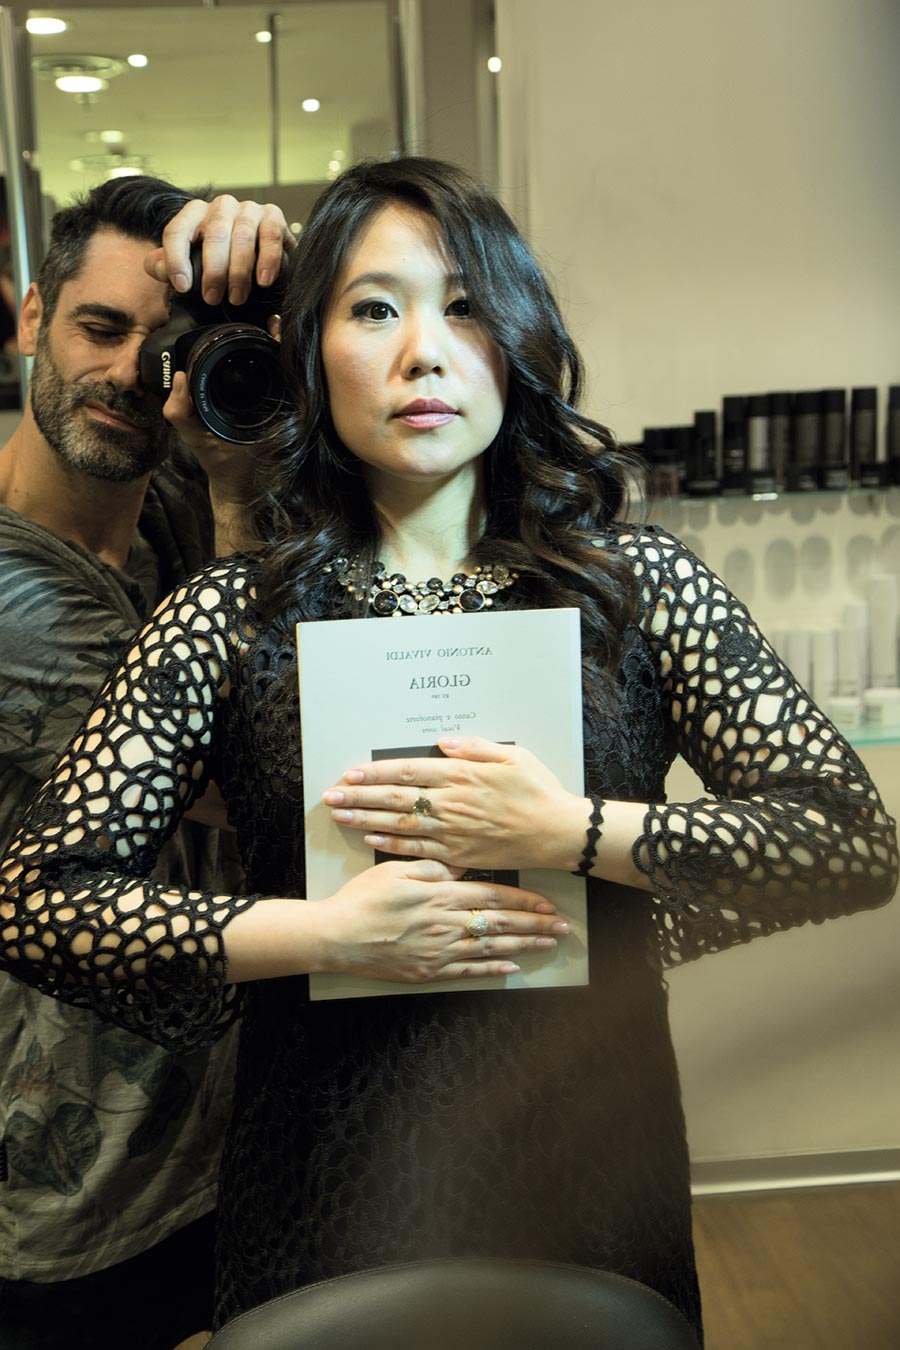 The opera singer Moon Jin Kim holds one of her scores while posing for the photographer Max Di Vincenzo. Photos by Max Di Vincenzo, Milan, Italy